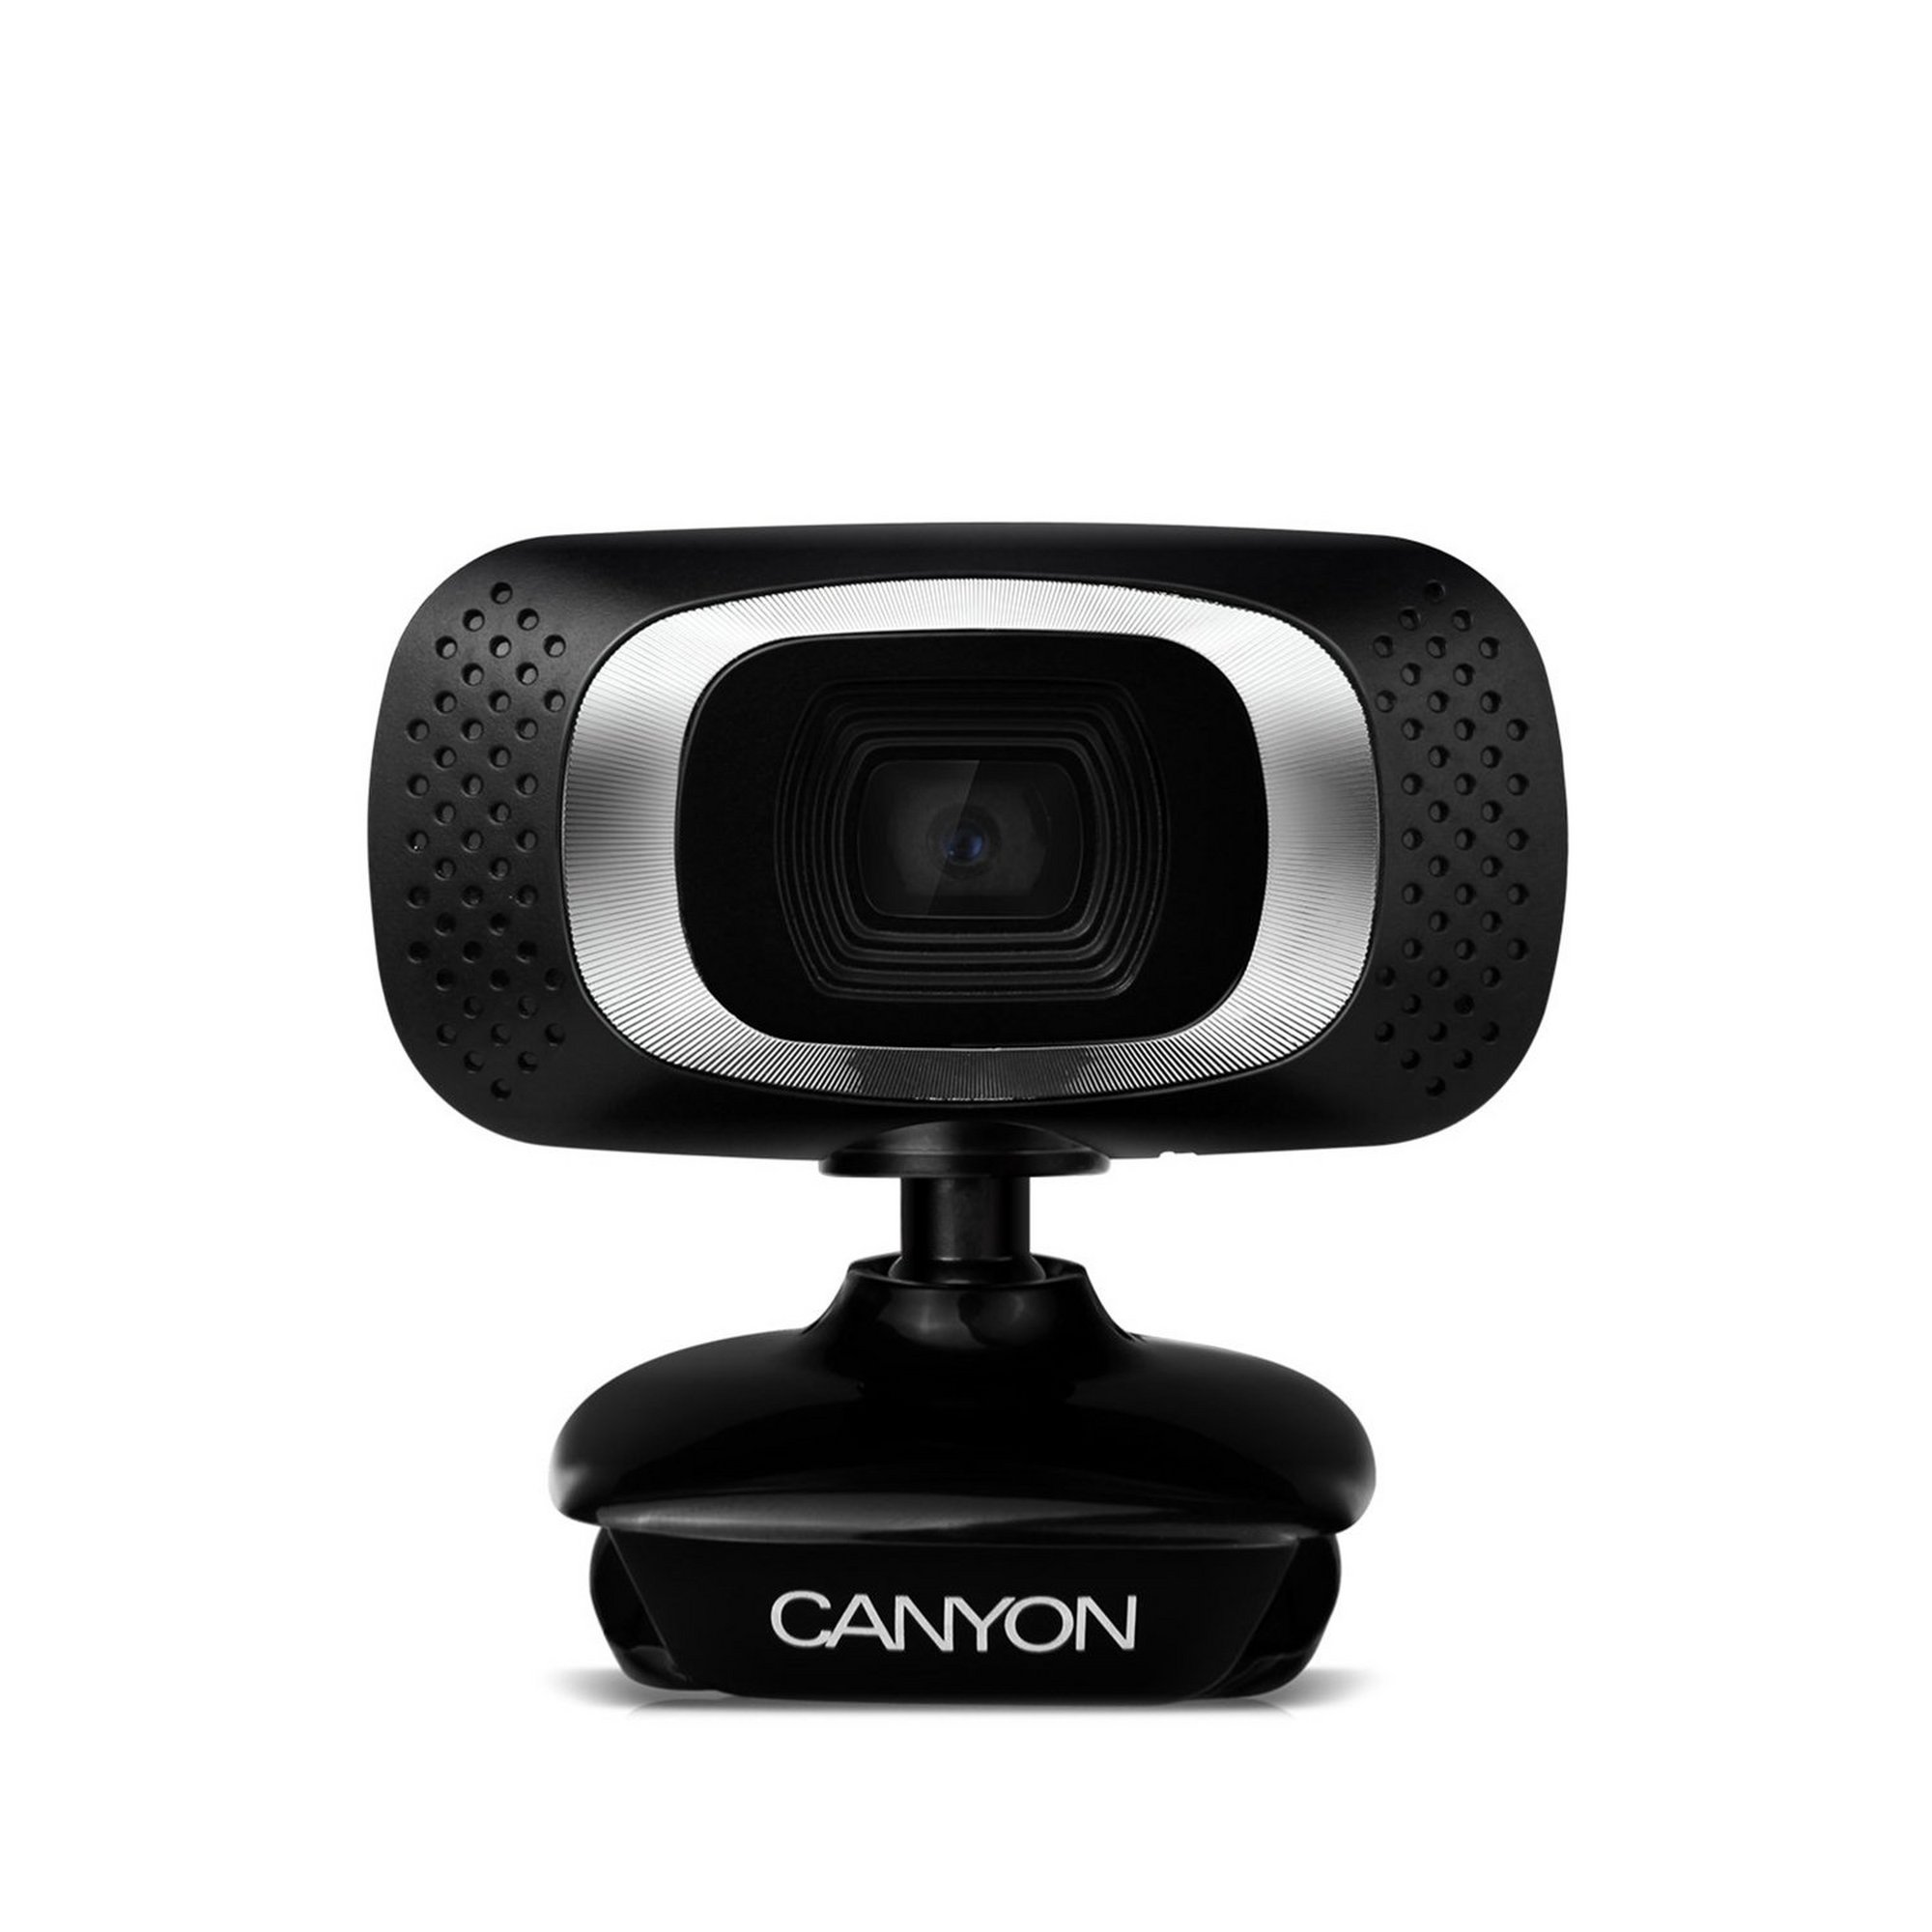 Image of Canyon USB Webcam with Integrated Microphone